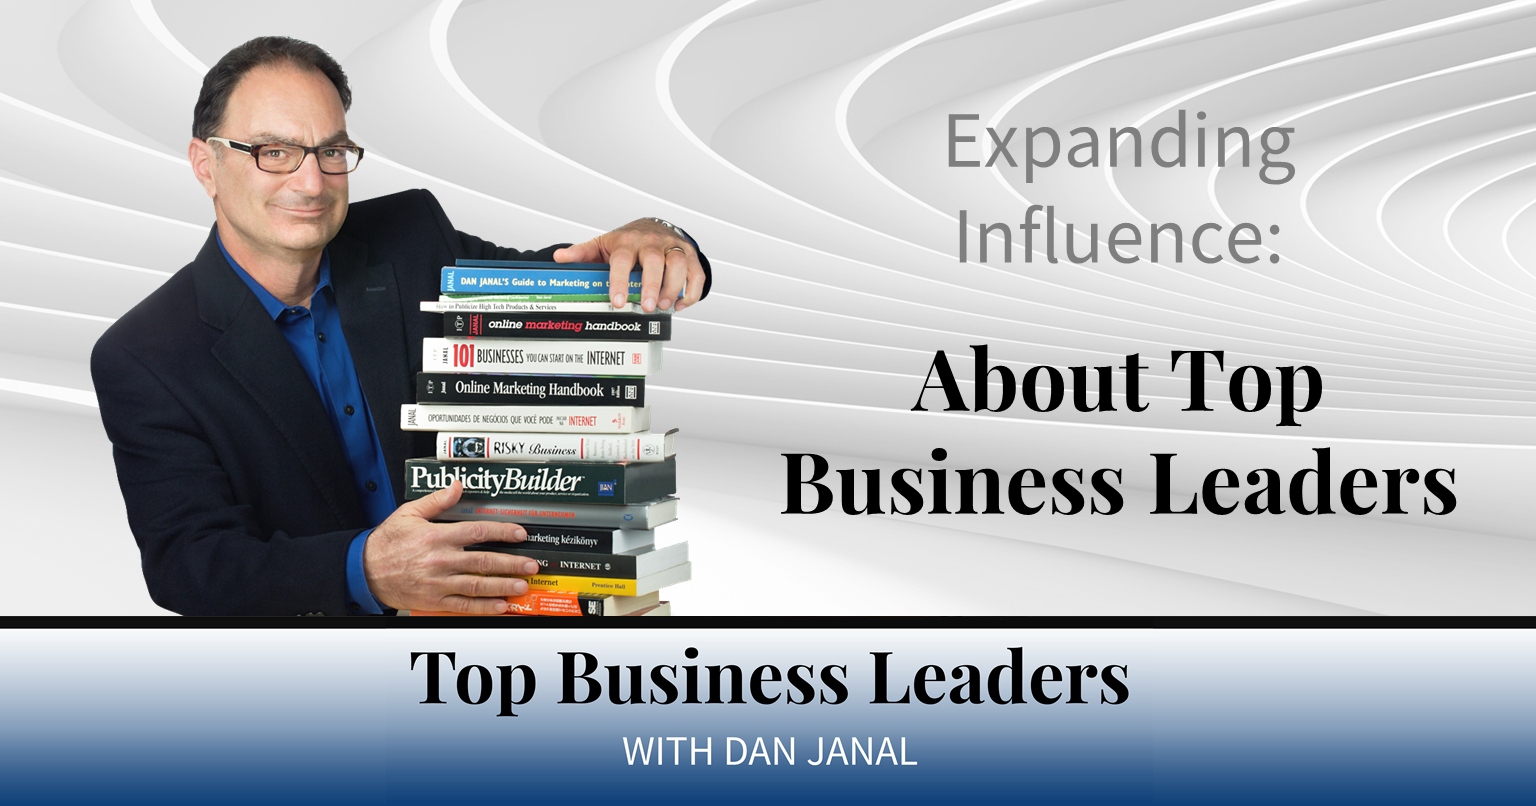 about-top-business-leaders